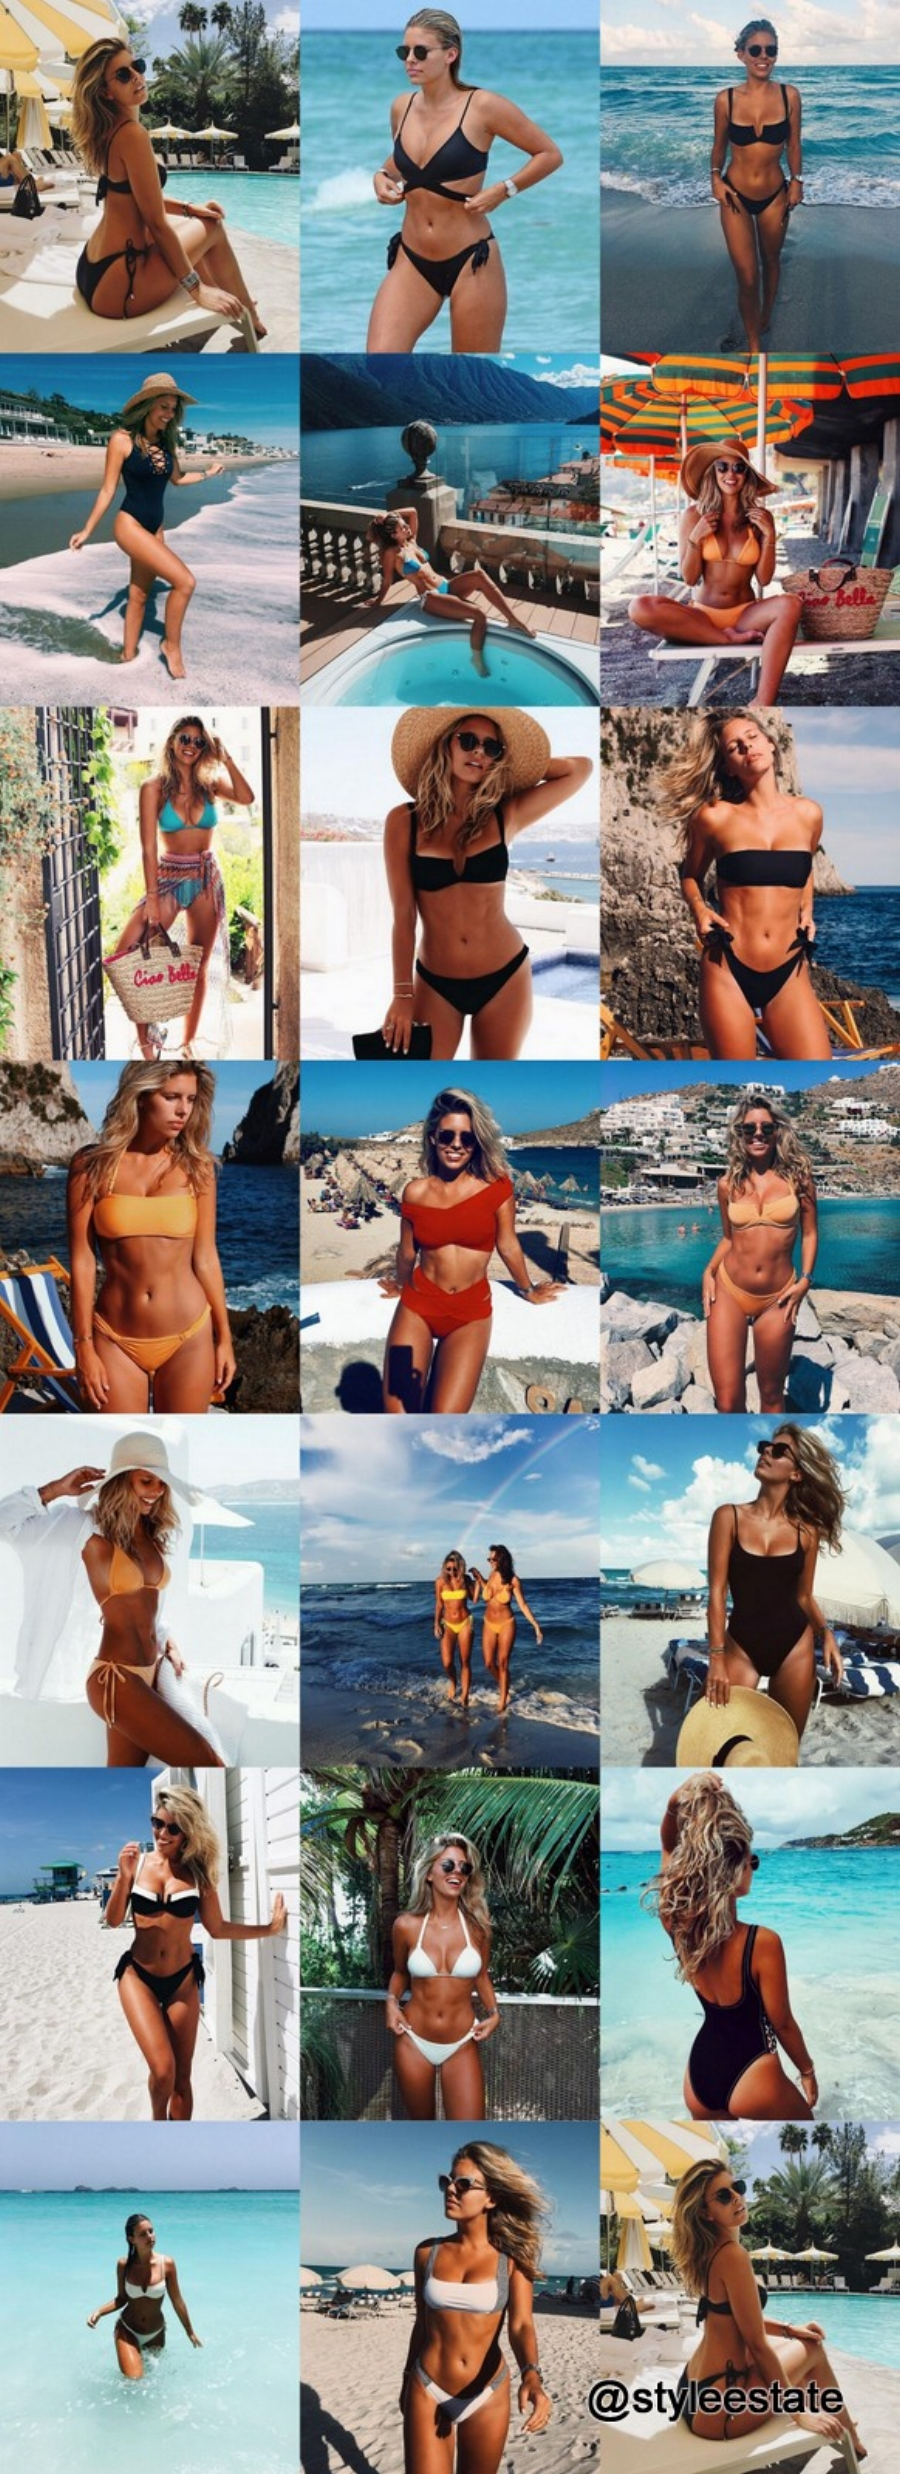 @tashoakley's Top 20 Bikinis & Swimsuits ft. @mondayswimwear 2016